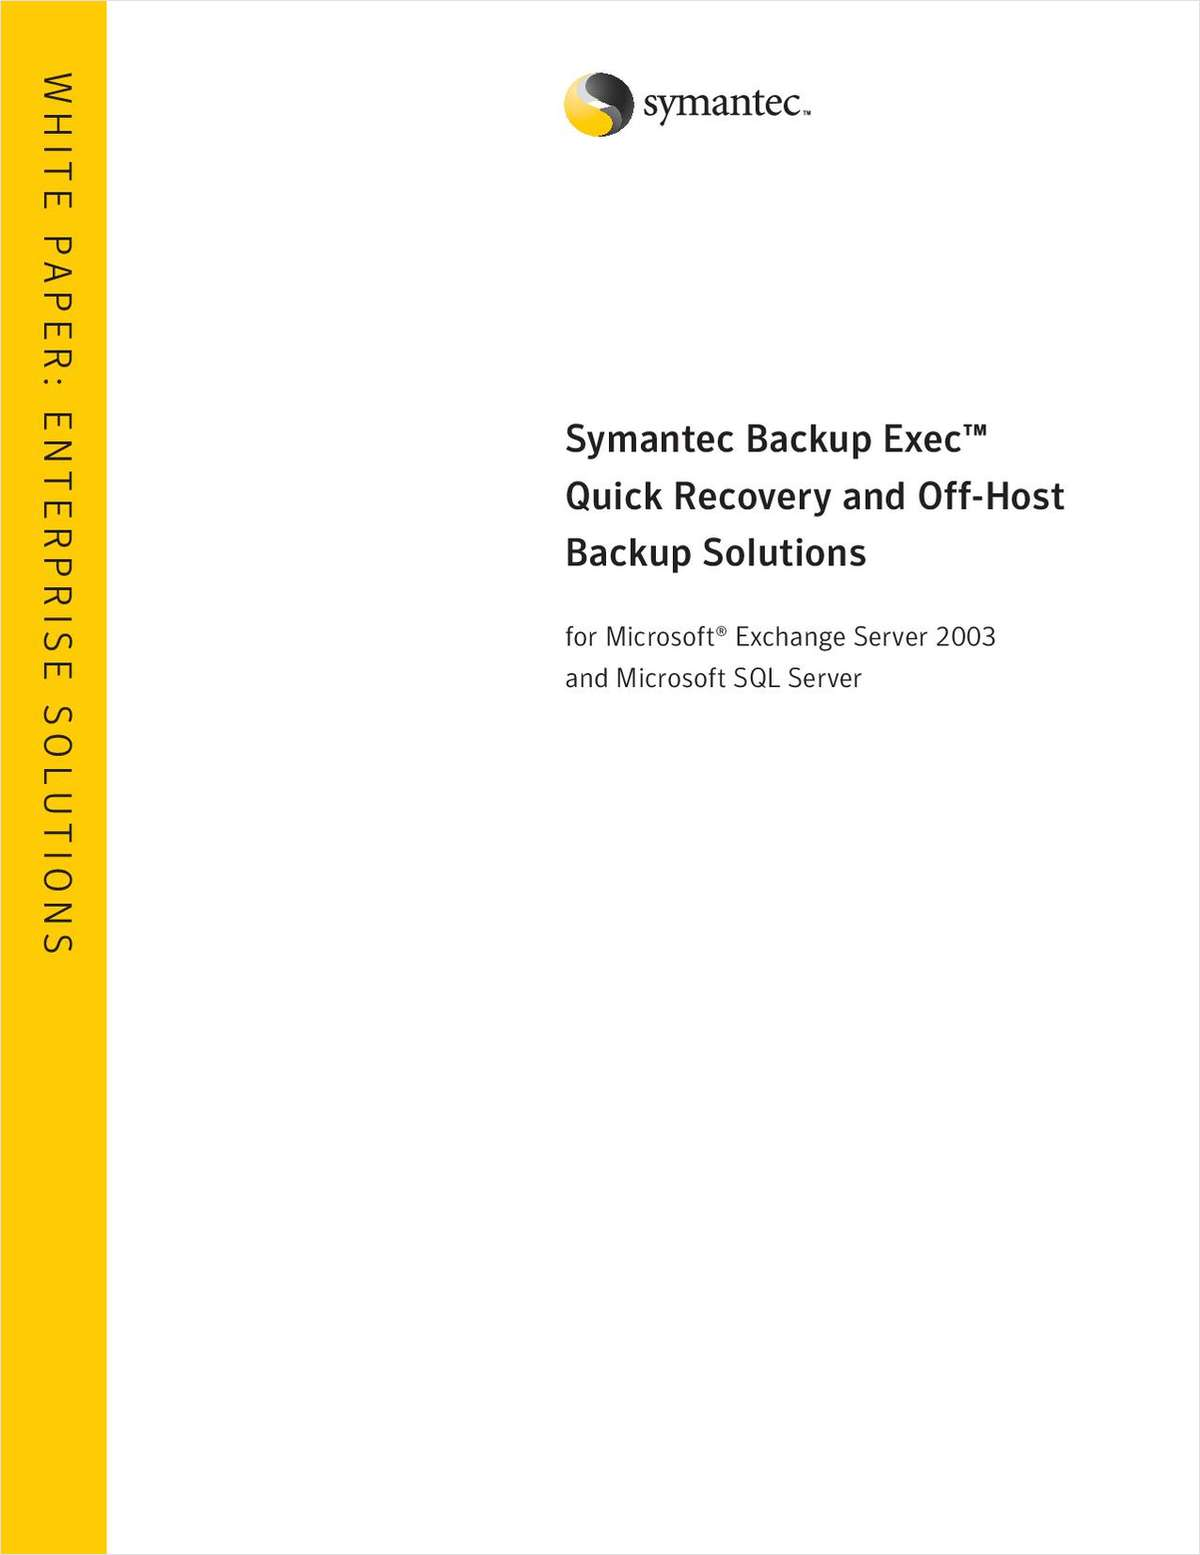 Symantec Backup Exec™ Quick Recovery and Off-Host Backup Solutions for Microsoft® Exchange Server 2003 and Microsoft SQL Server